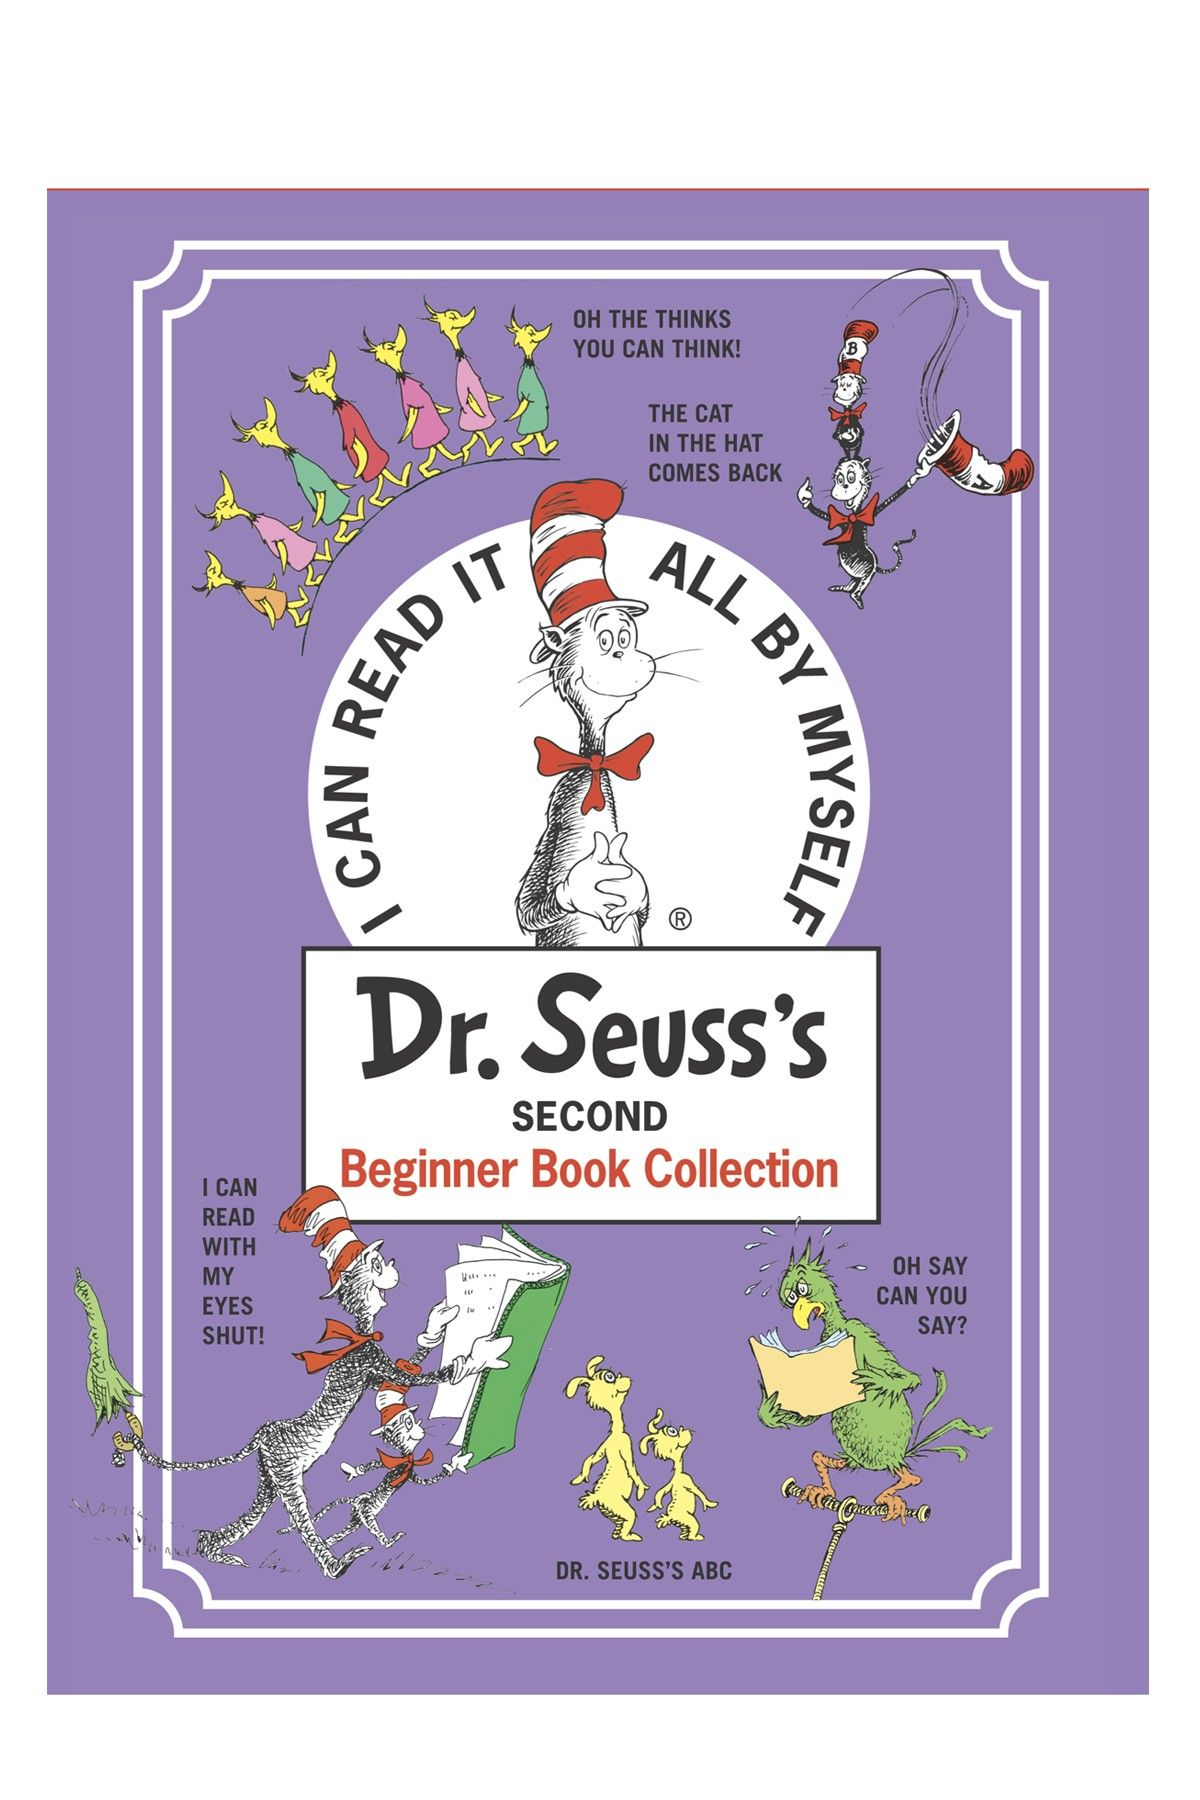 Dr seuss with images beginner books book collection